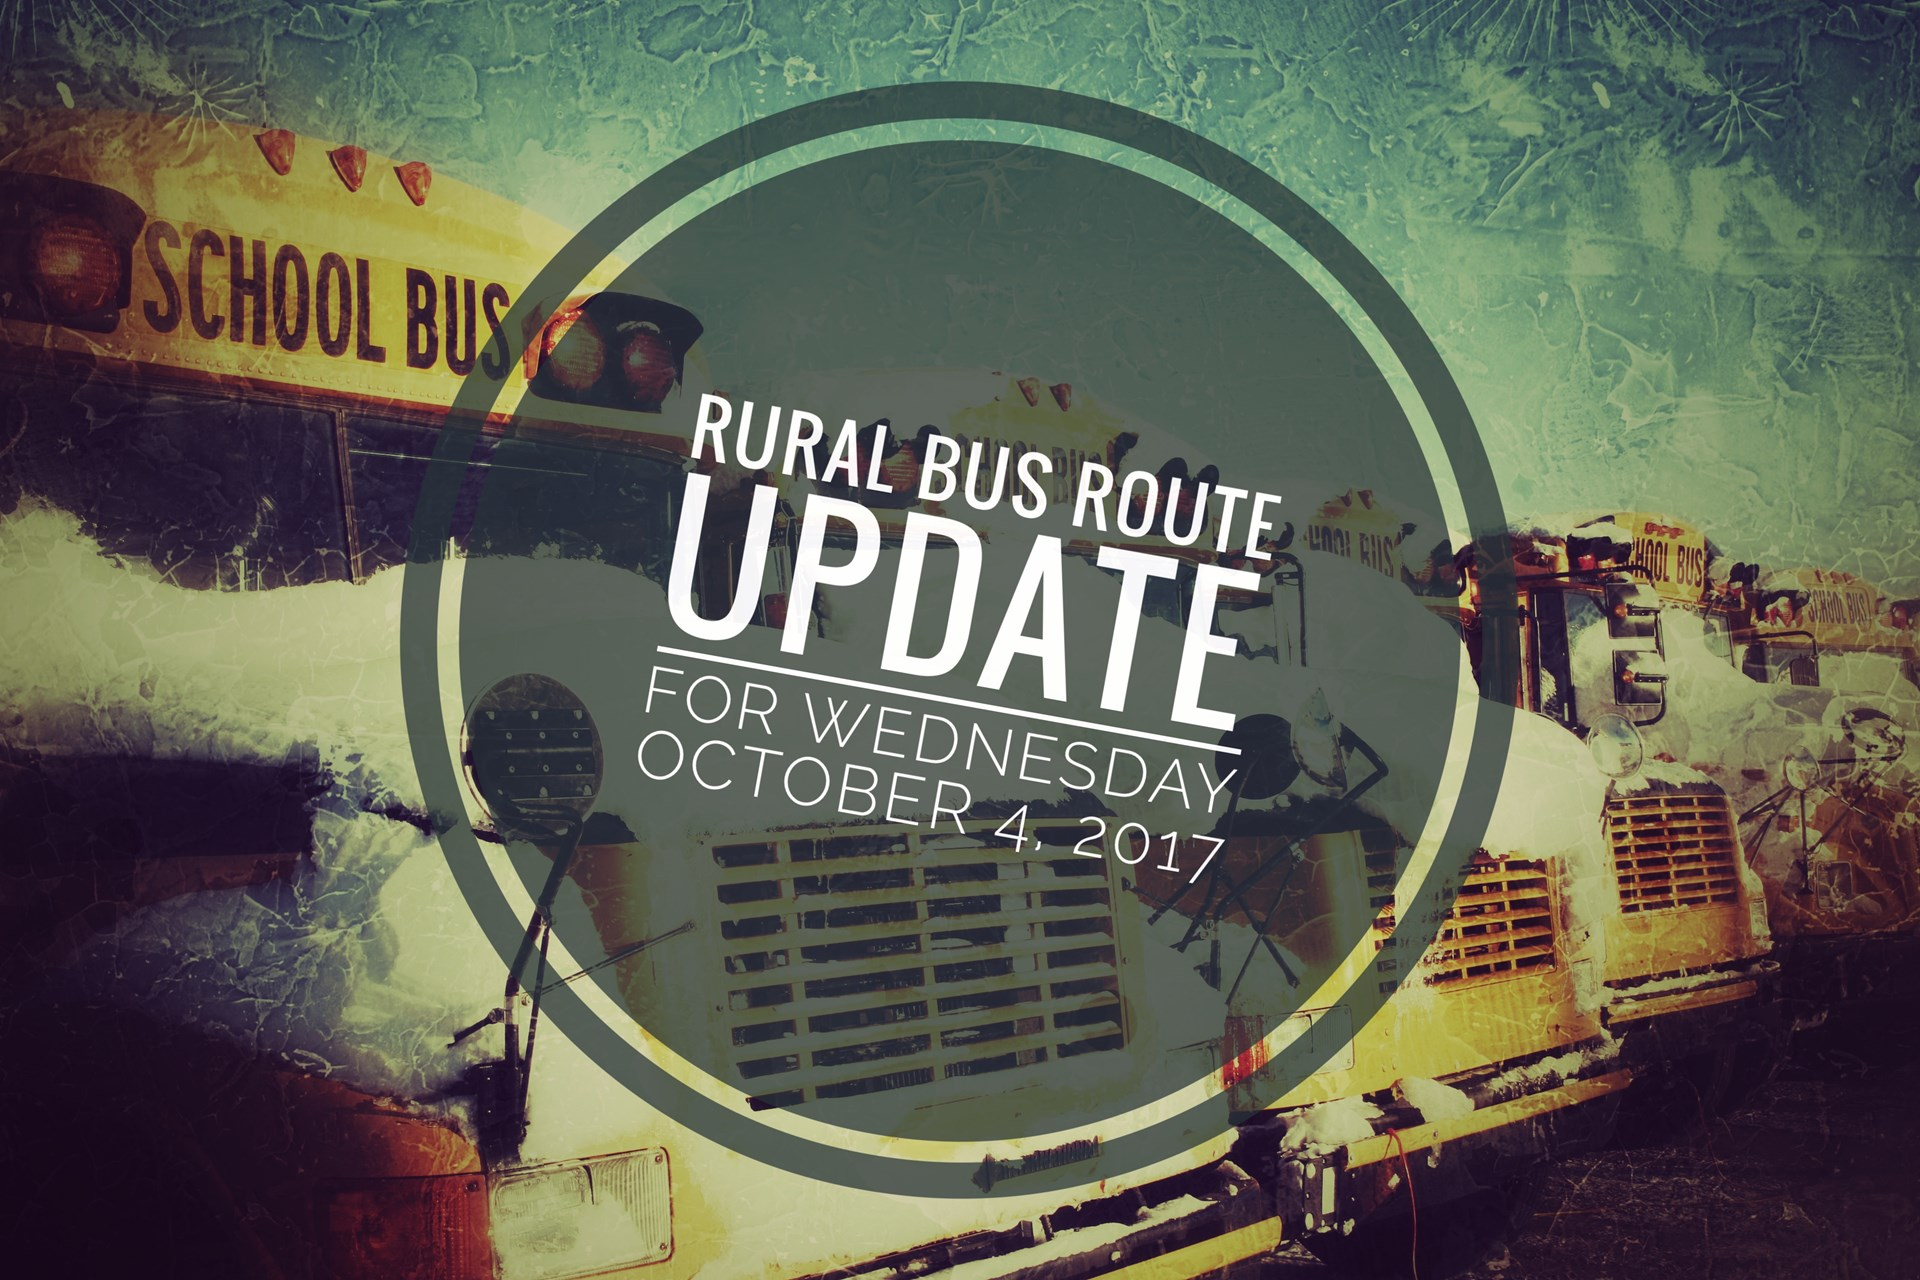 Rural%20Bus%20Route%20Update%20Oct%204-17.jpg